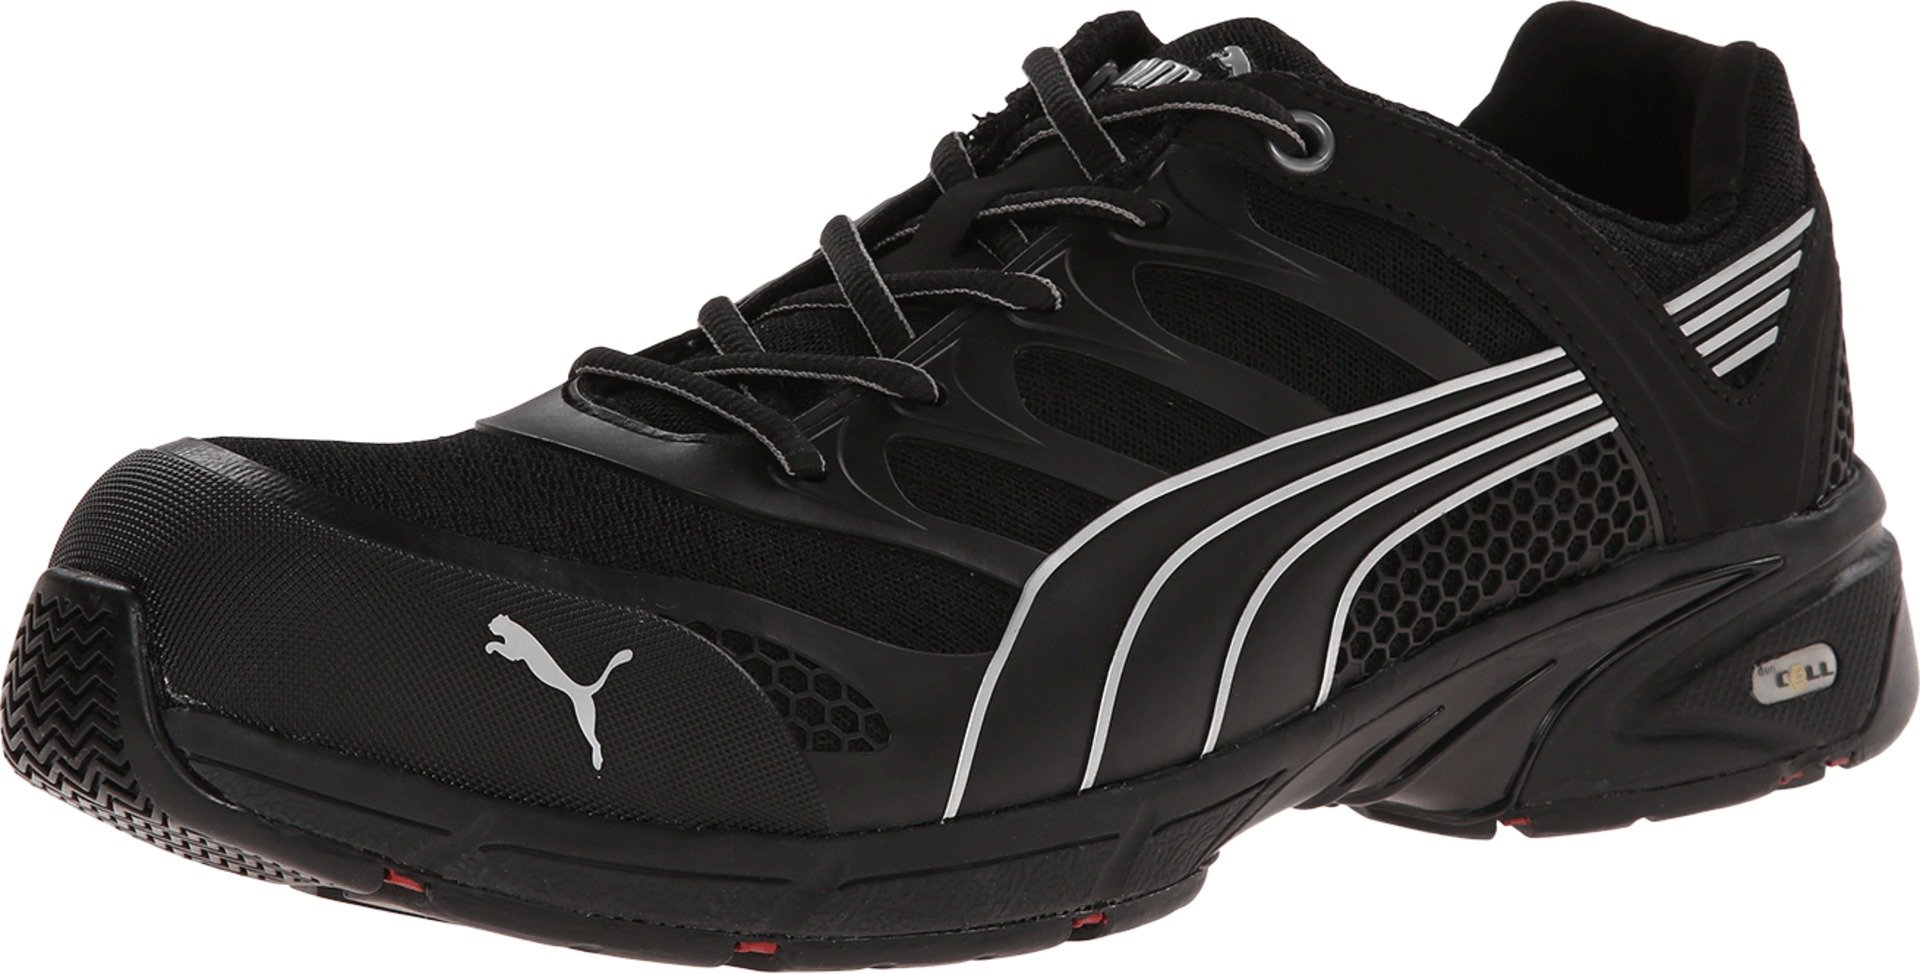 Men's Puma Safety Fuse Motion SD Low Safety Toe Shoes, Black/Black, 13D